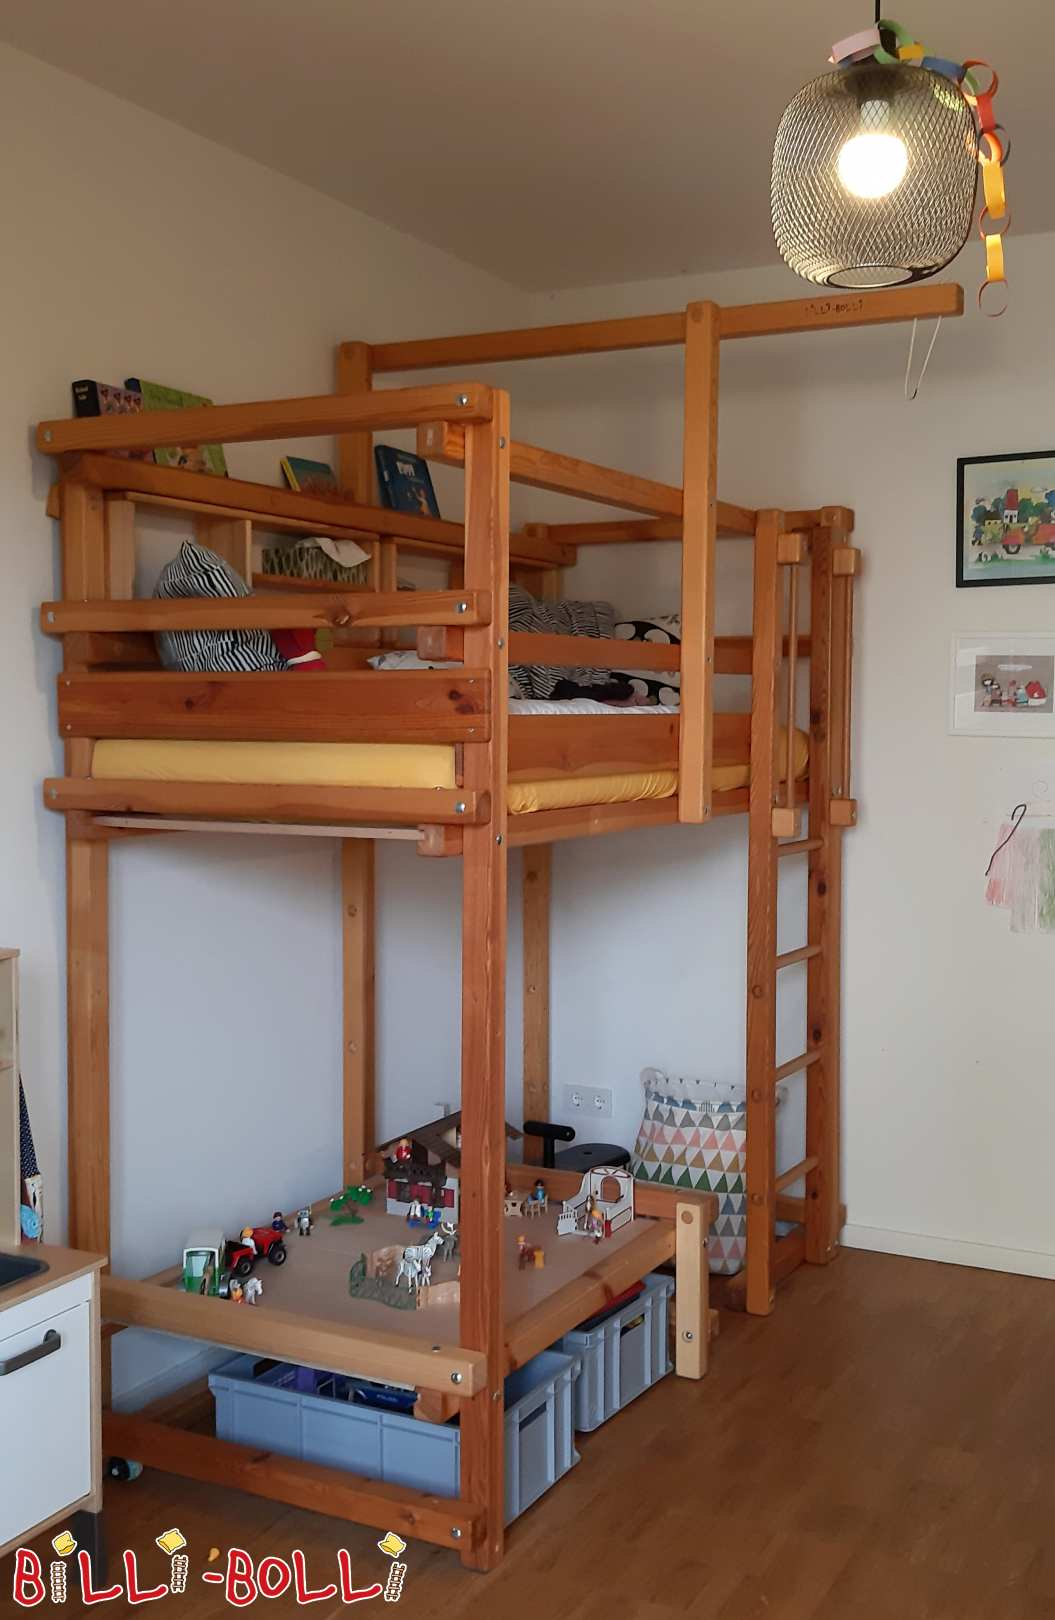 Cuddly bed pine oiled 80 x 190 cm with two small bed racks (second hand loft bed)